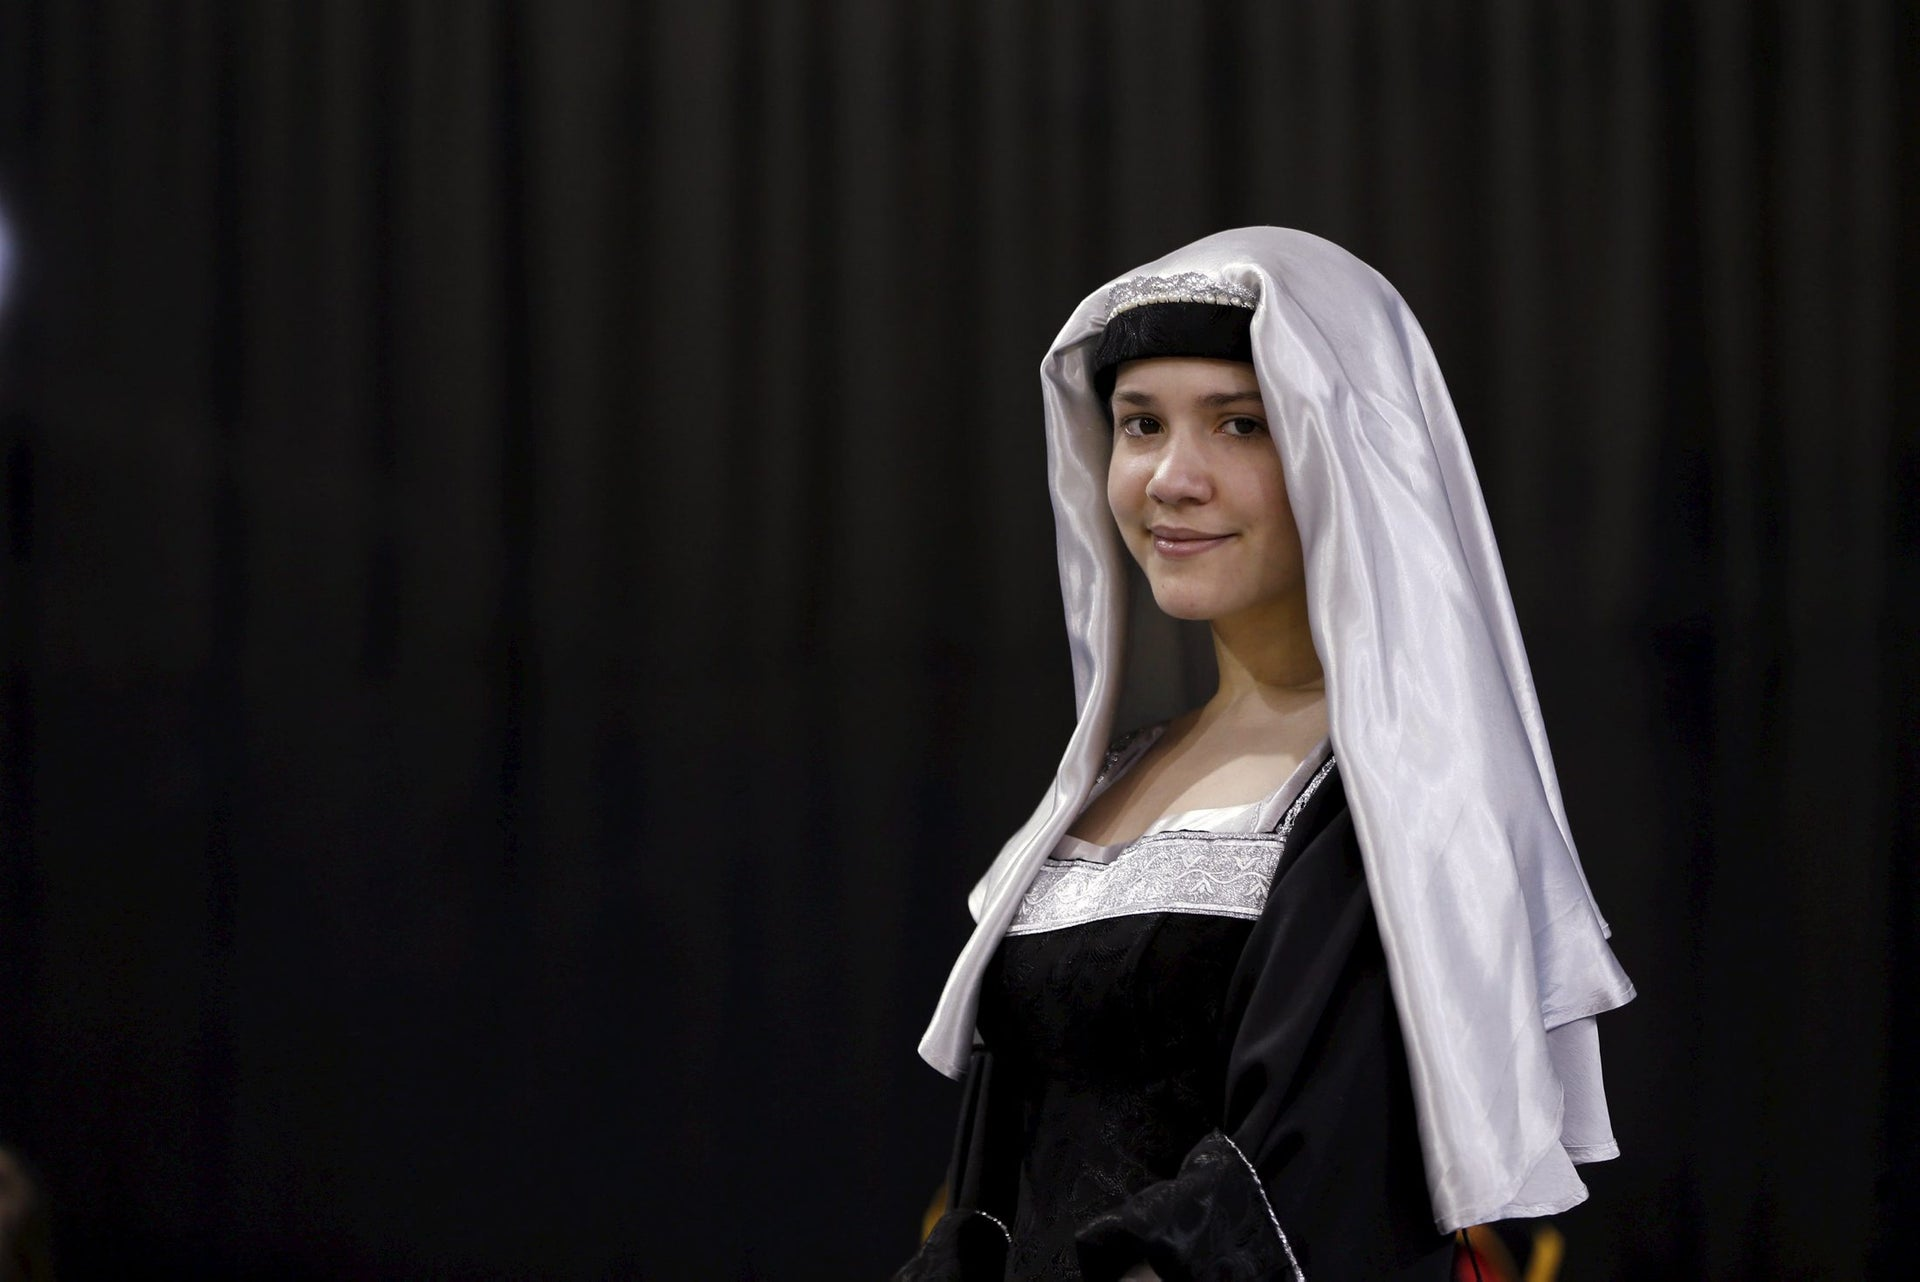 A woman stands in a medieval costume during an international medieval tournament in Tel Aviv, January 23, 2016.